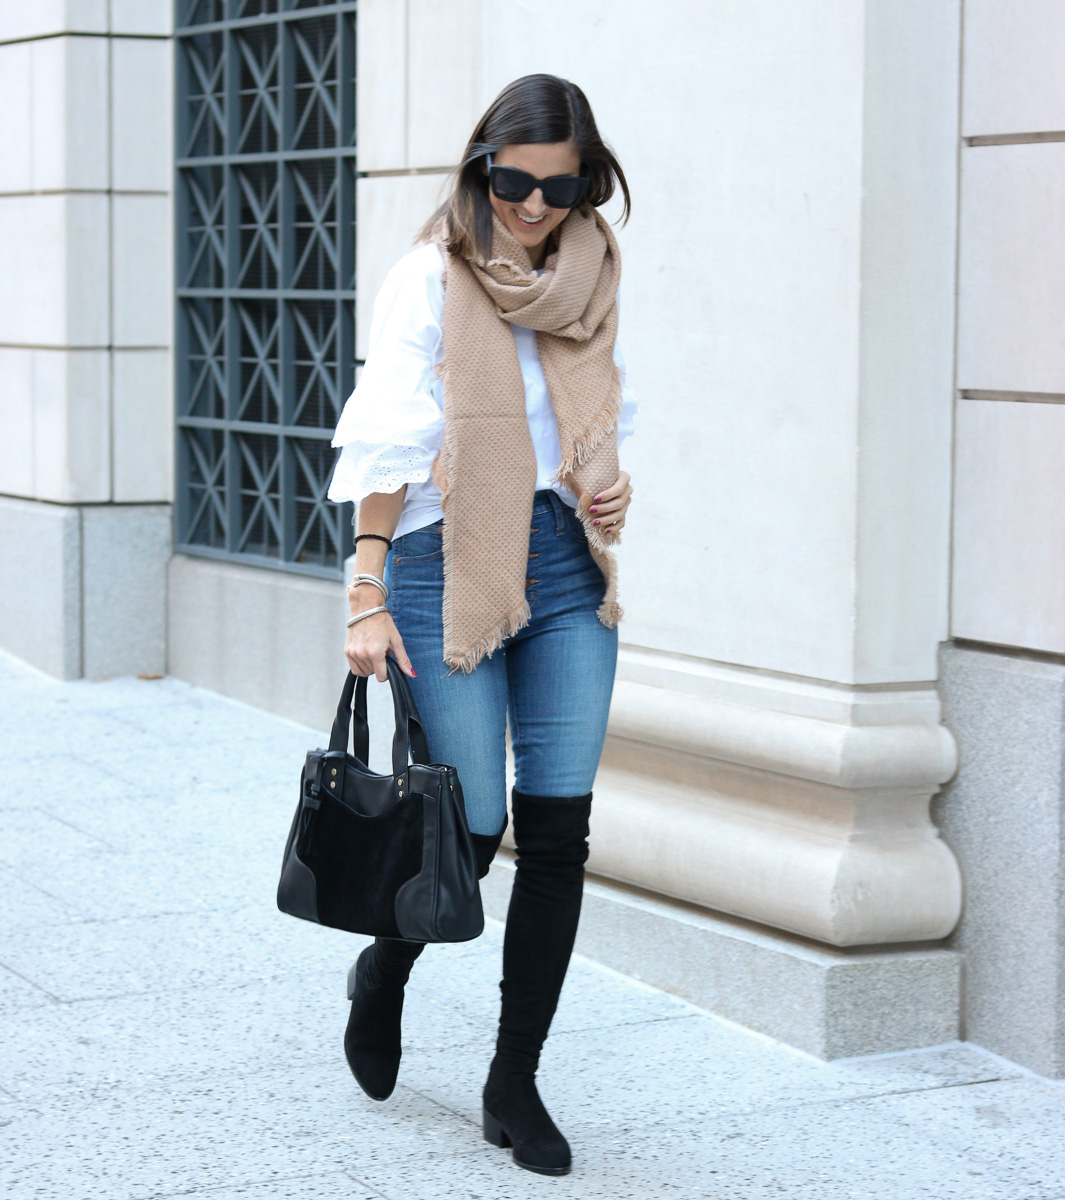 Boots, Bag, Scarf for Fall